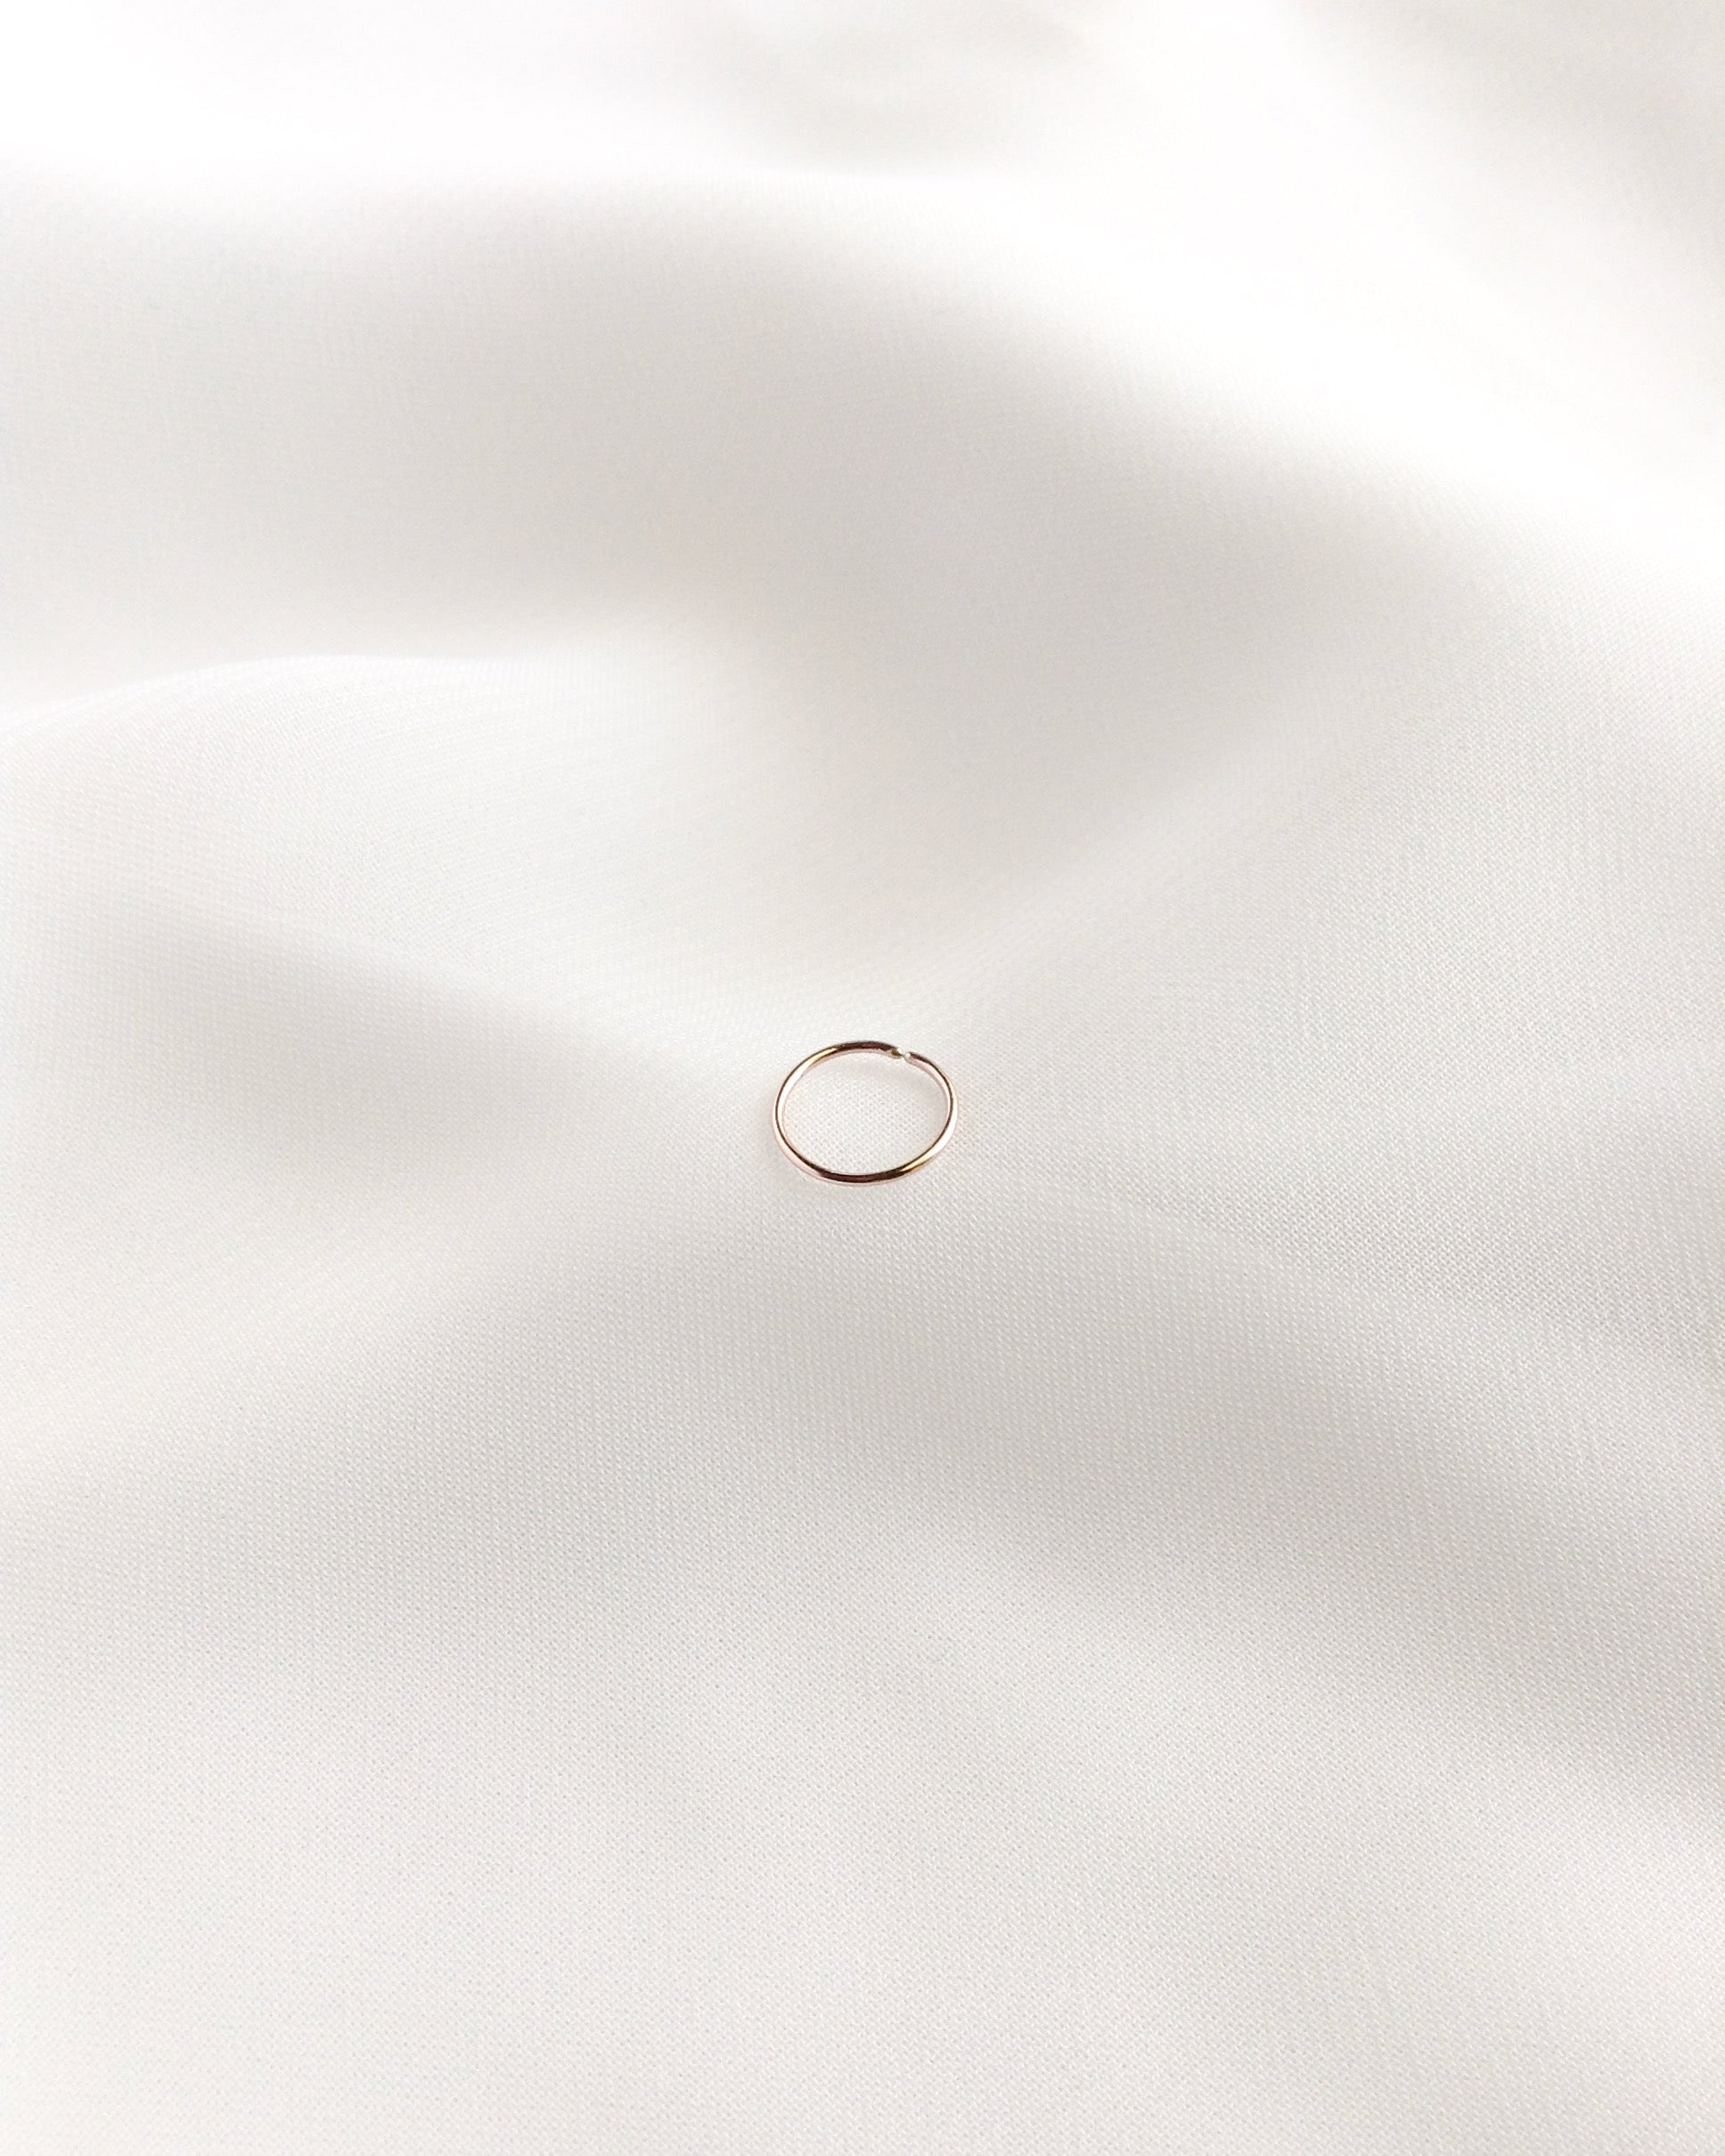 Tiny Cartilage Hoop | 4mm 5mm 6mm 7mm or 8mm Cartilage Hoop | Thin Cartilage Hoop | IB Jewelry